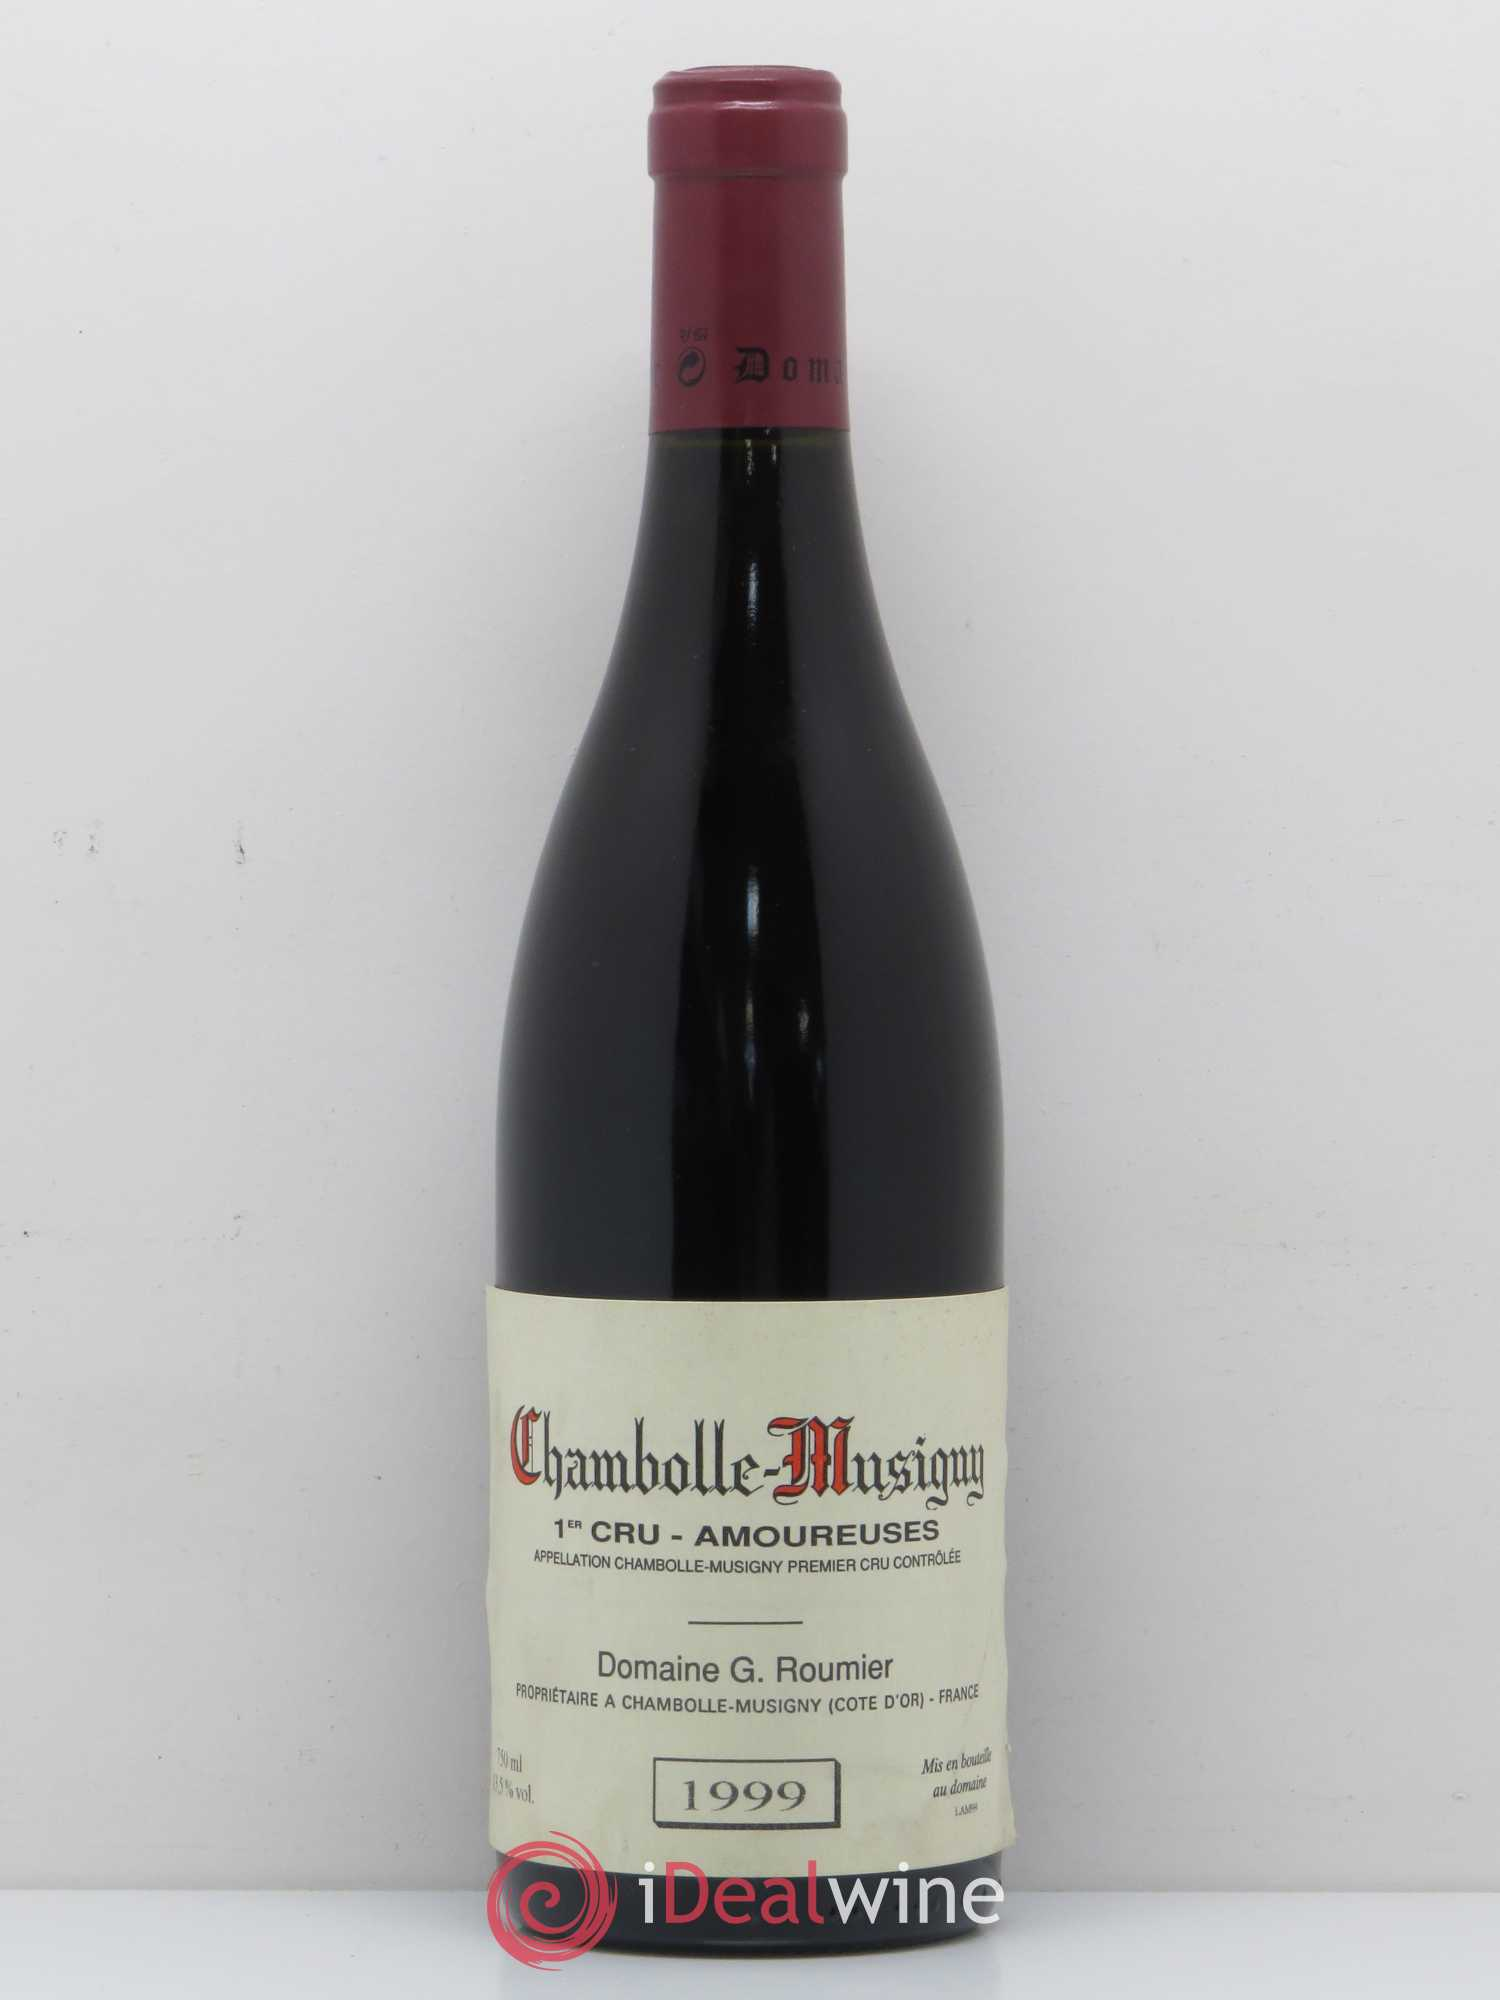 Chambolle-Musigny 1er Cru Les Amoureuses Georges Roumier (Domaine)  1999 - Lot of 1 Bottle